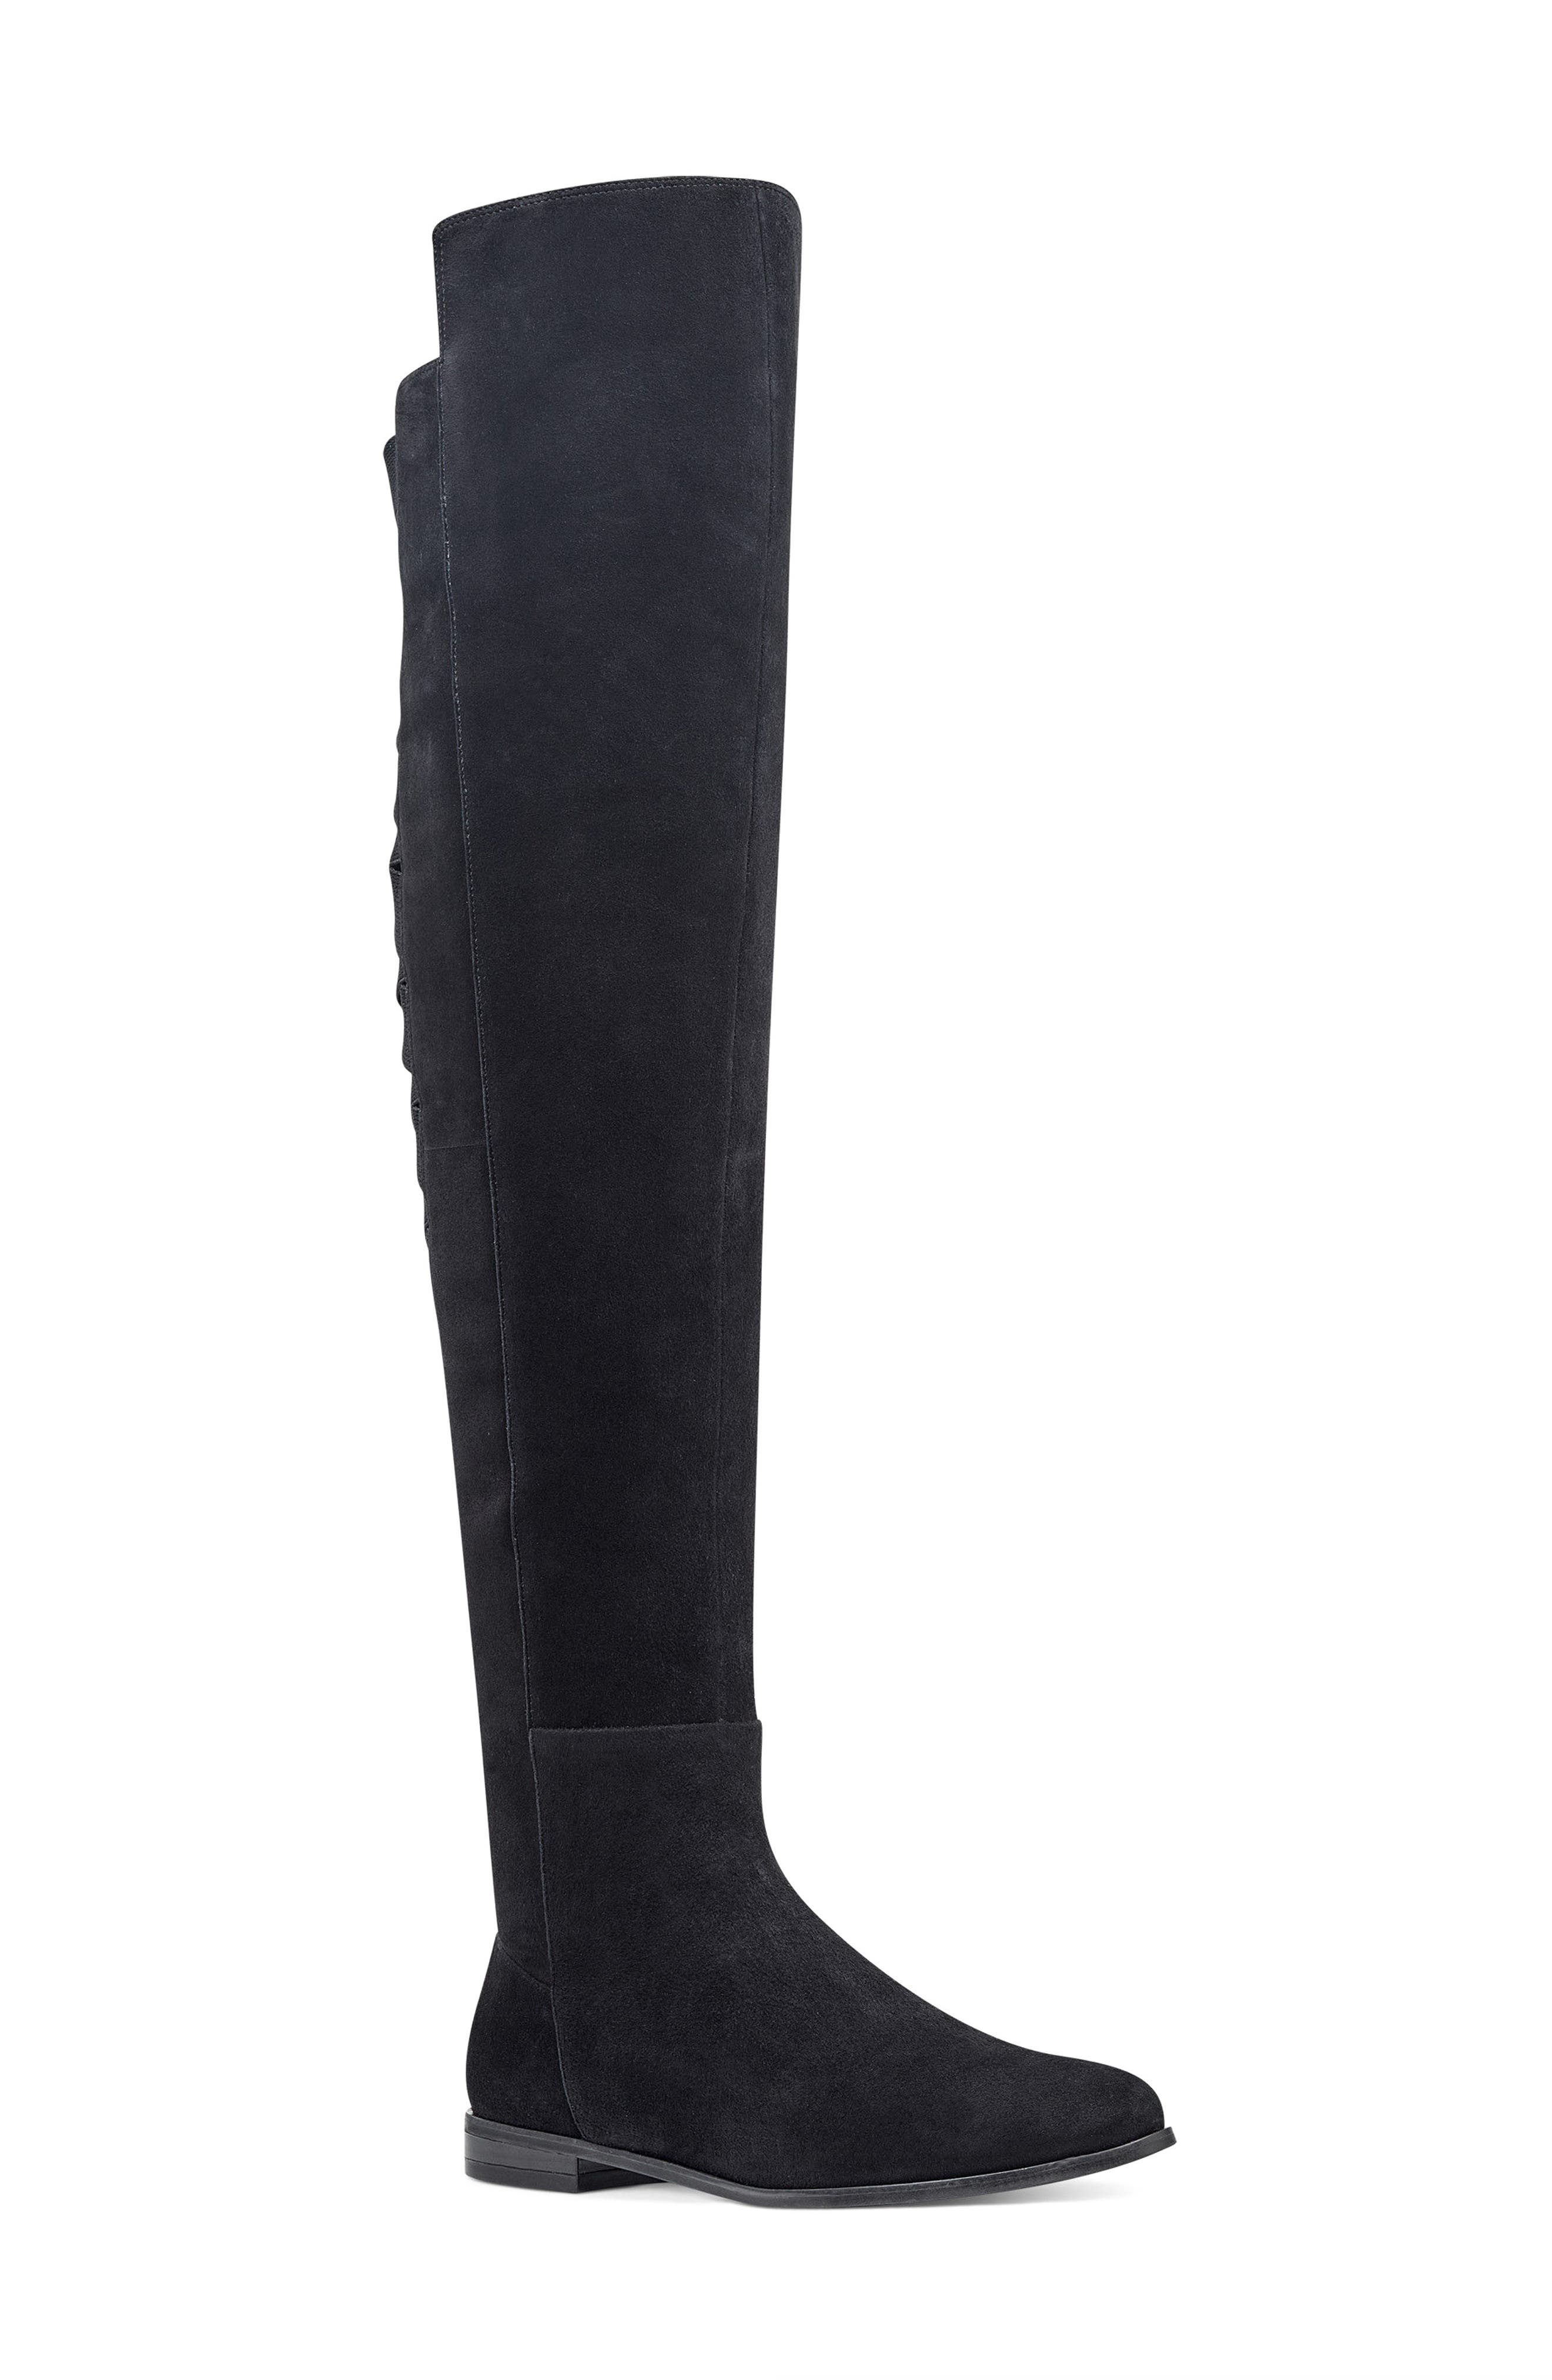 NINE WEST Eltynn Over the Knee Boot, Main, color, 001